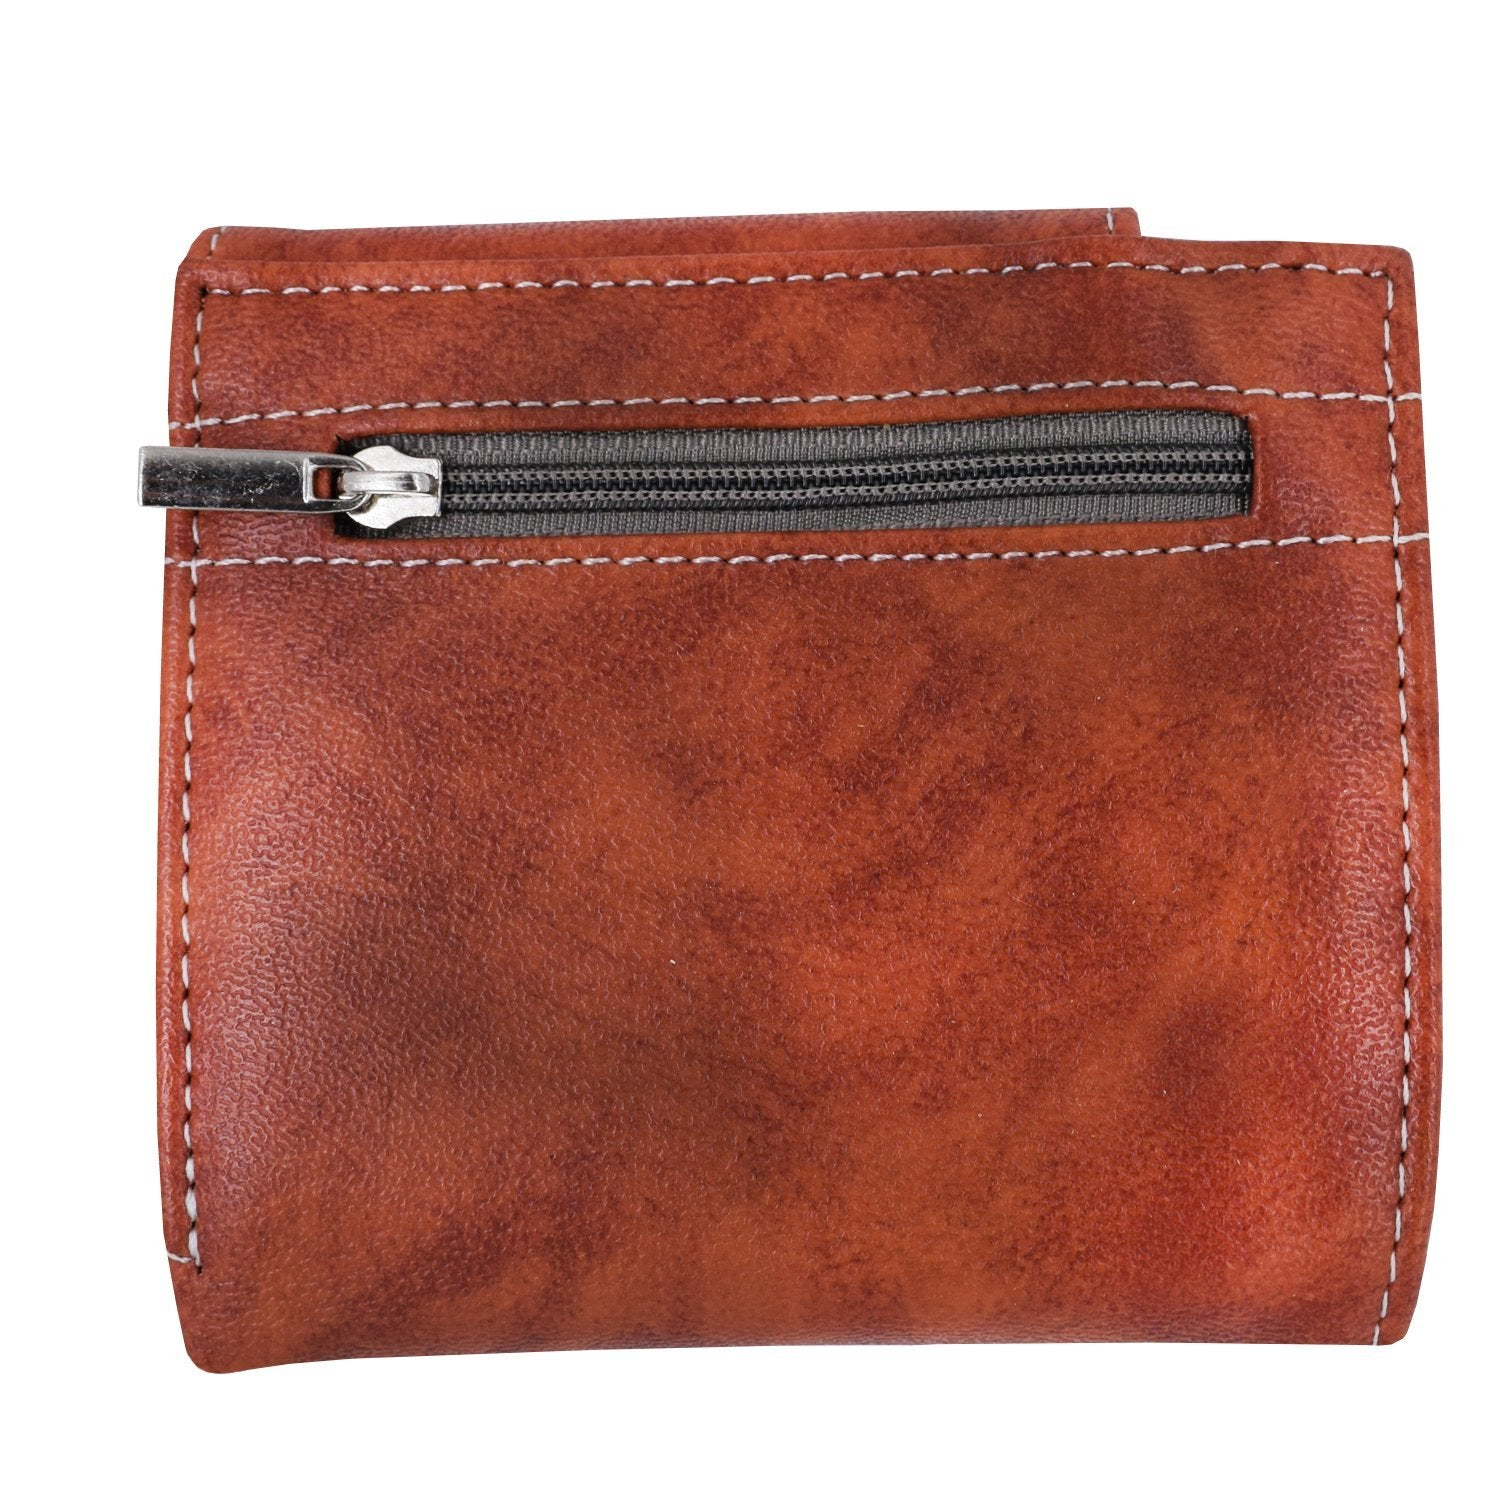 Genuine Leather Coin Purse Mini Money Wallet - Bagaholics Gift